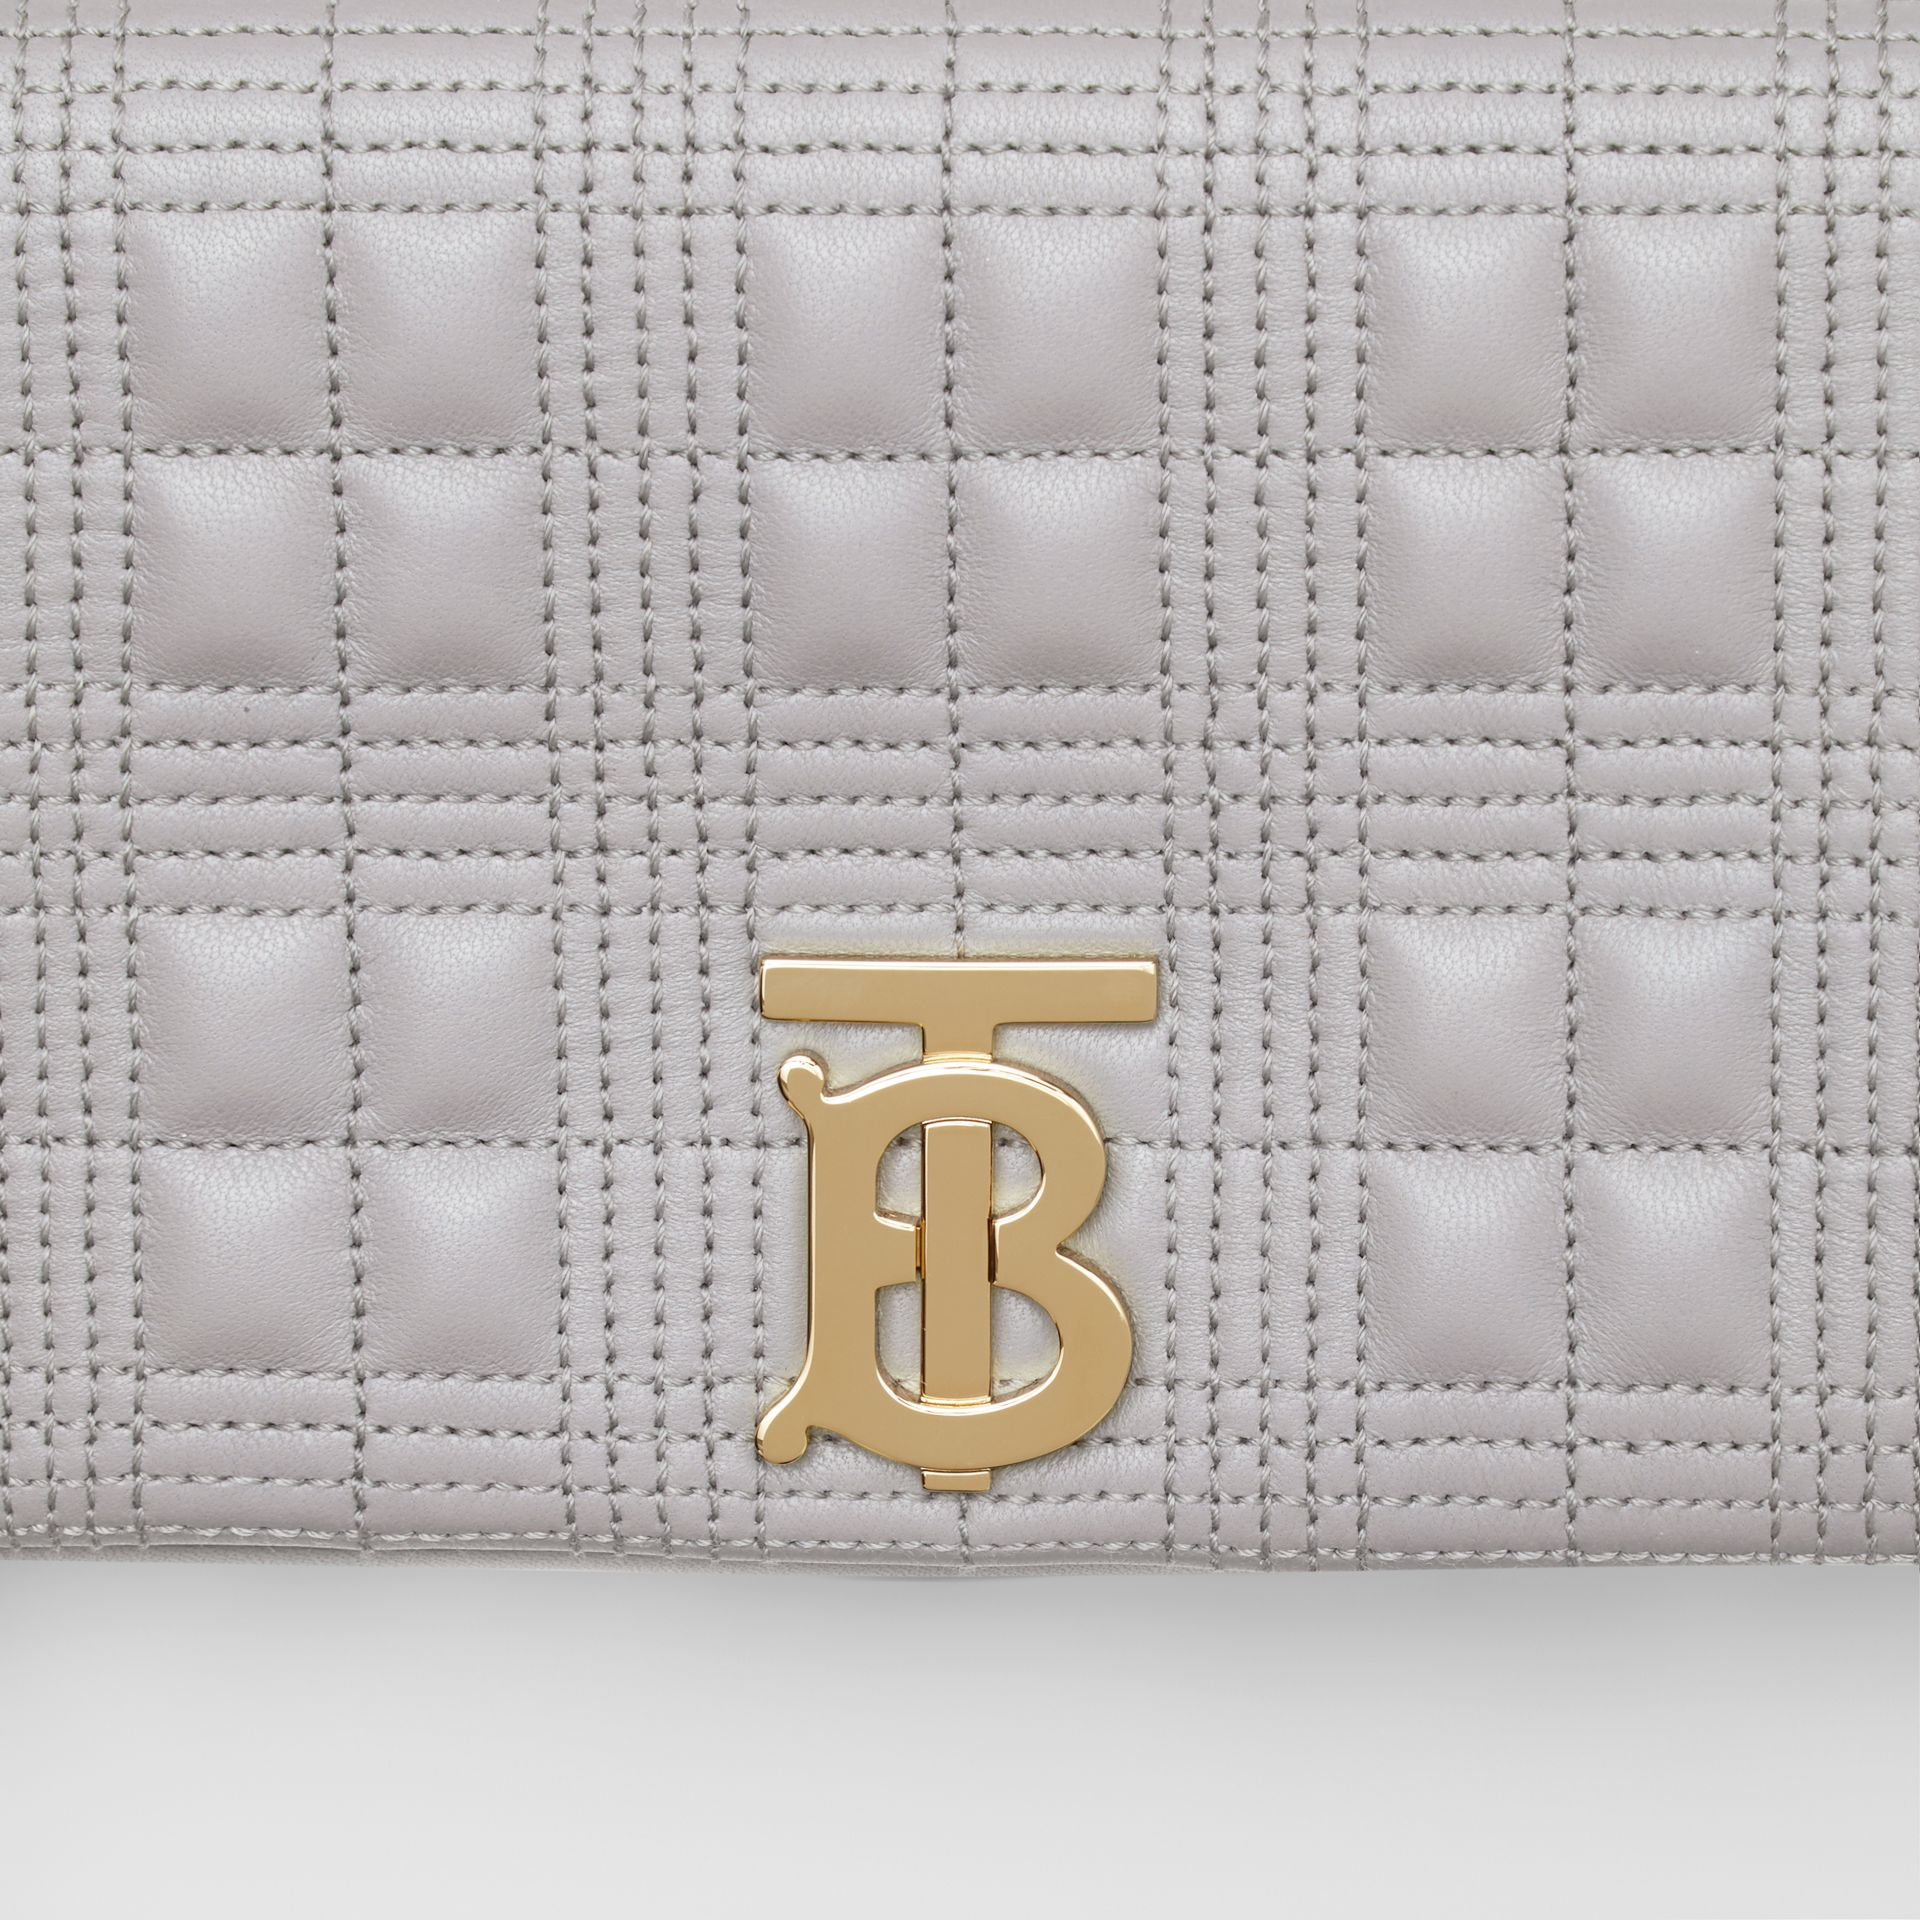 Small Quilted Lambskin Lola Bag in Cloud Grey | Burberry - gallery image 1